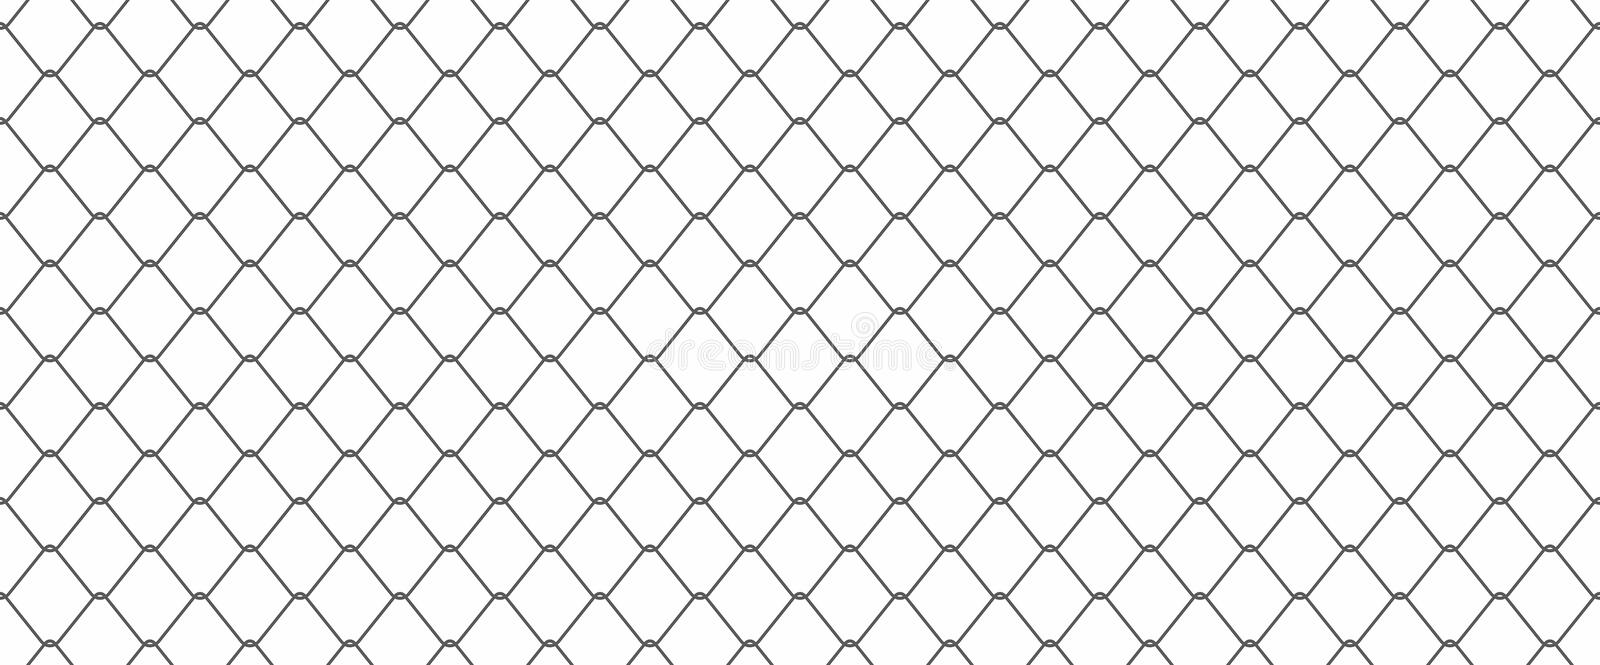 Chainlink fence royalty free illustration